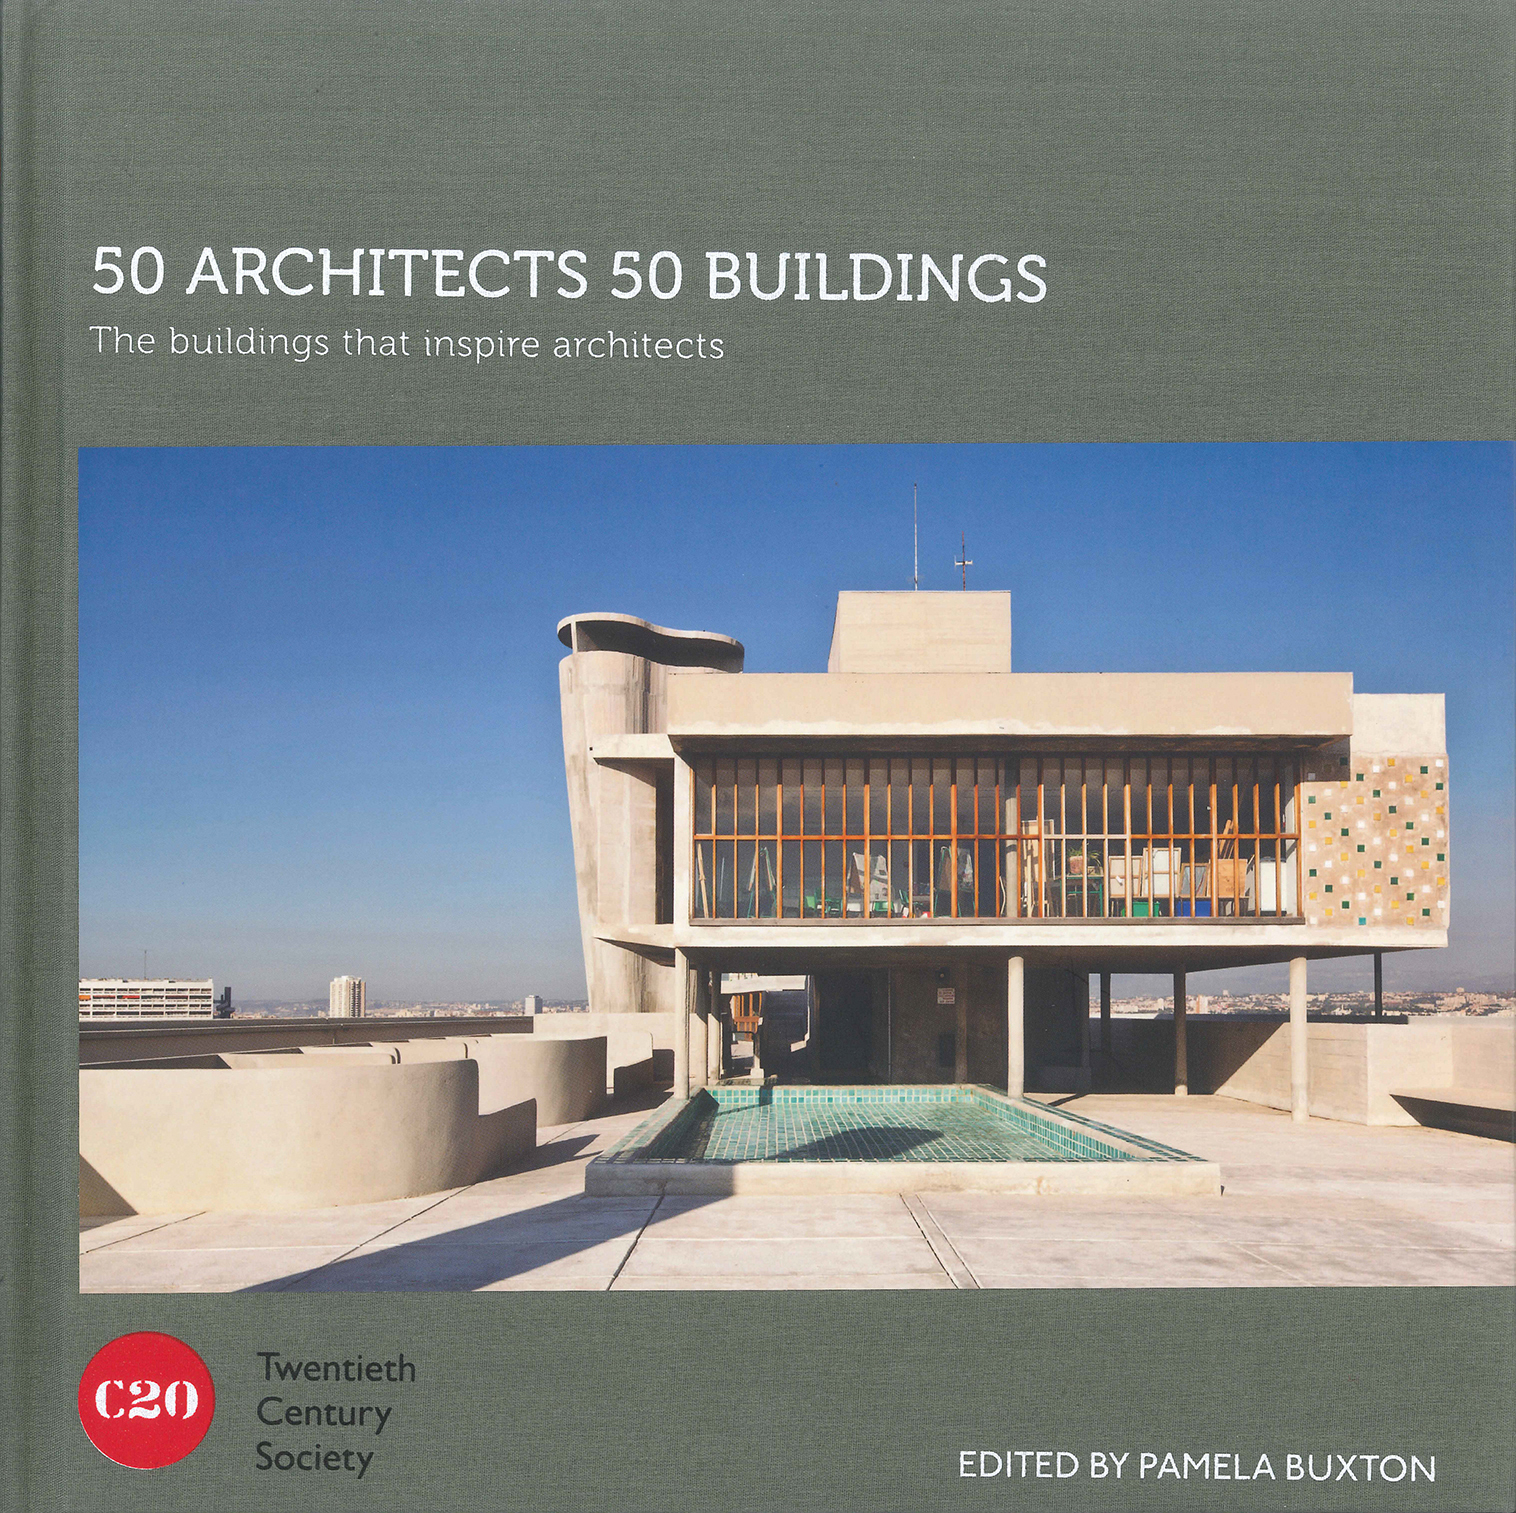 50 Arch 50 Buildings_Cover